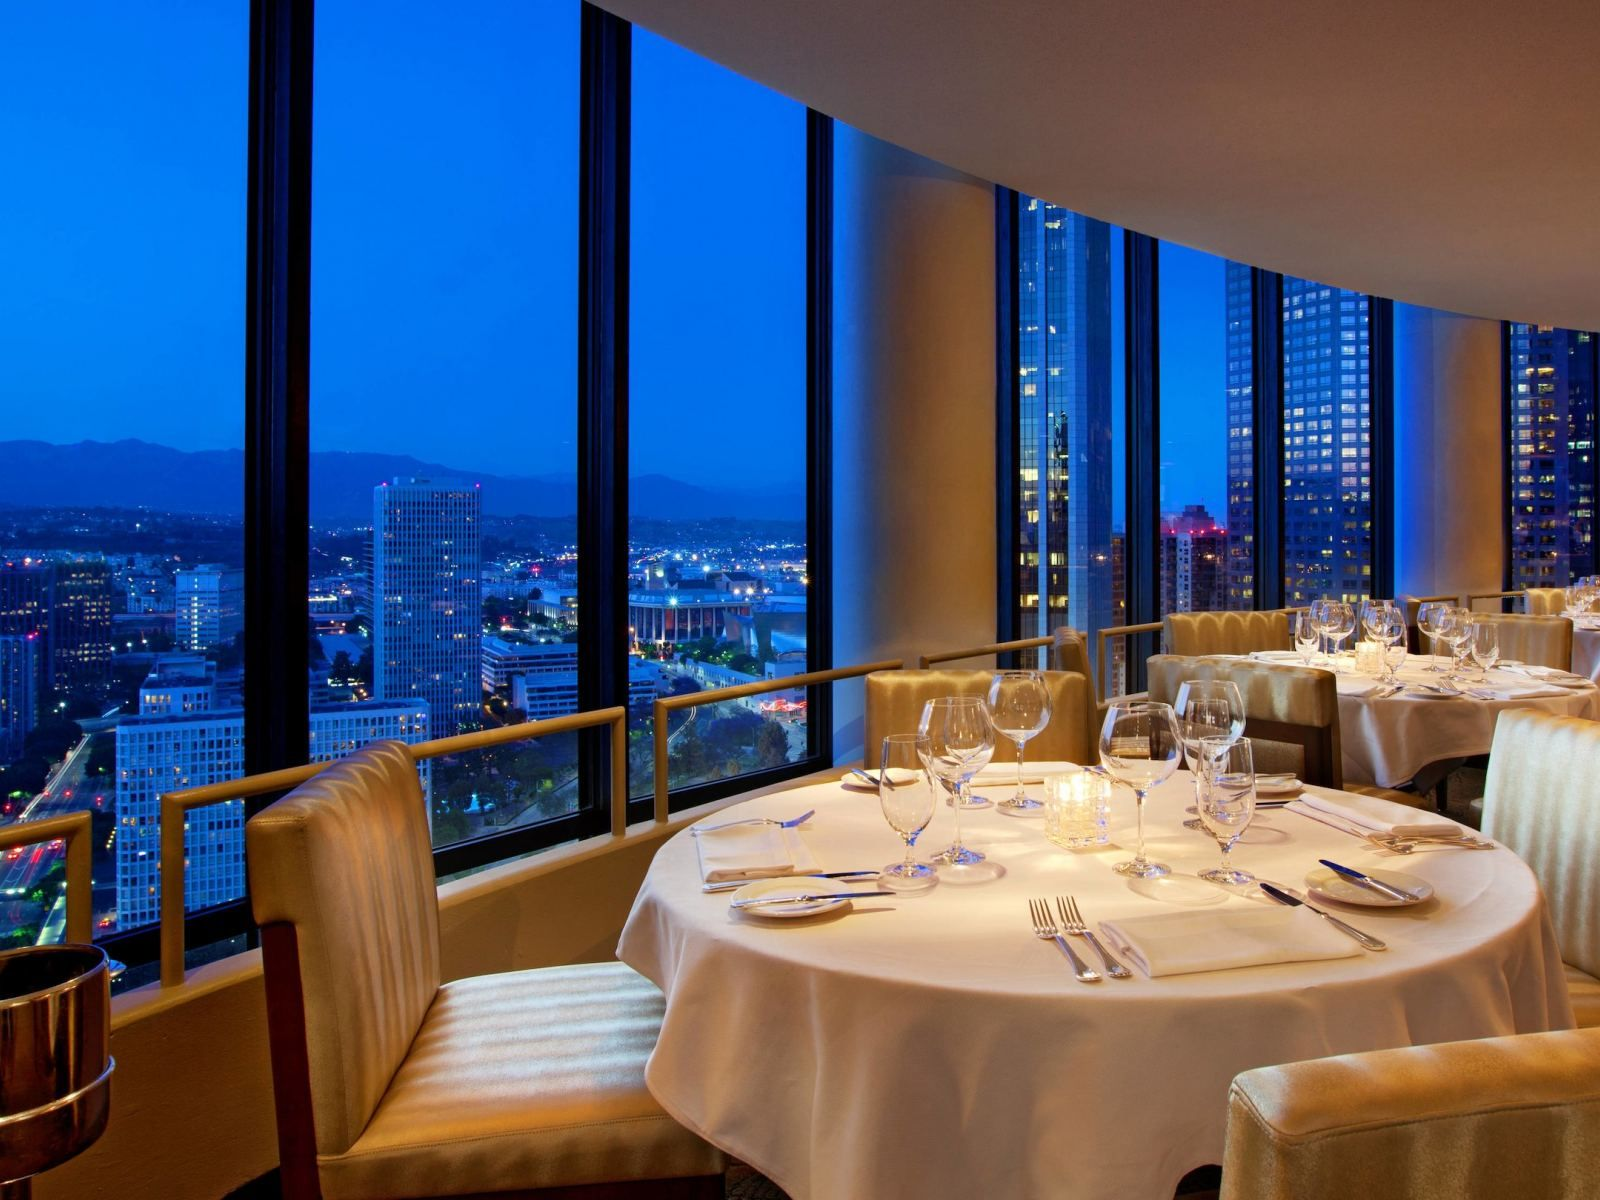 The Best Restaurants With A View In Los Angeles Discover Los Angeles Los Angeles Hotels Hotel Suites Hotel